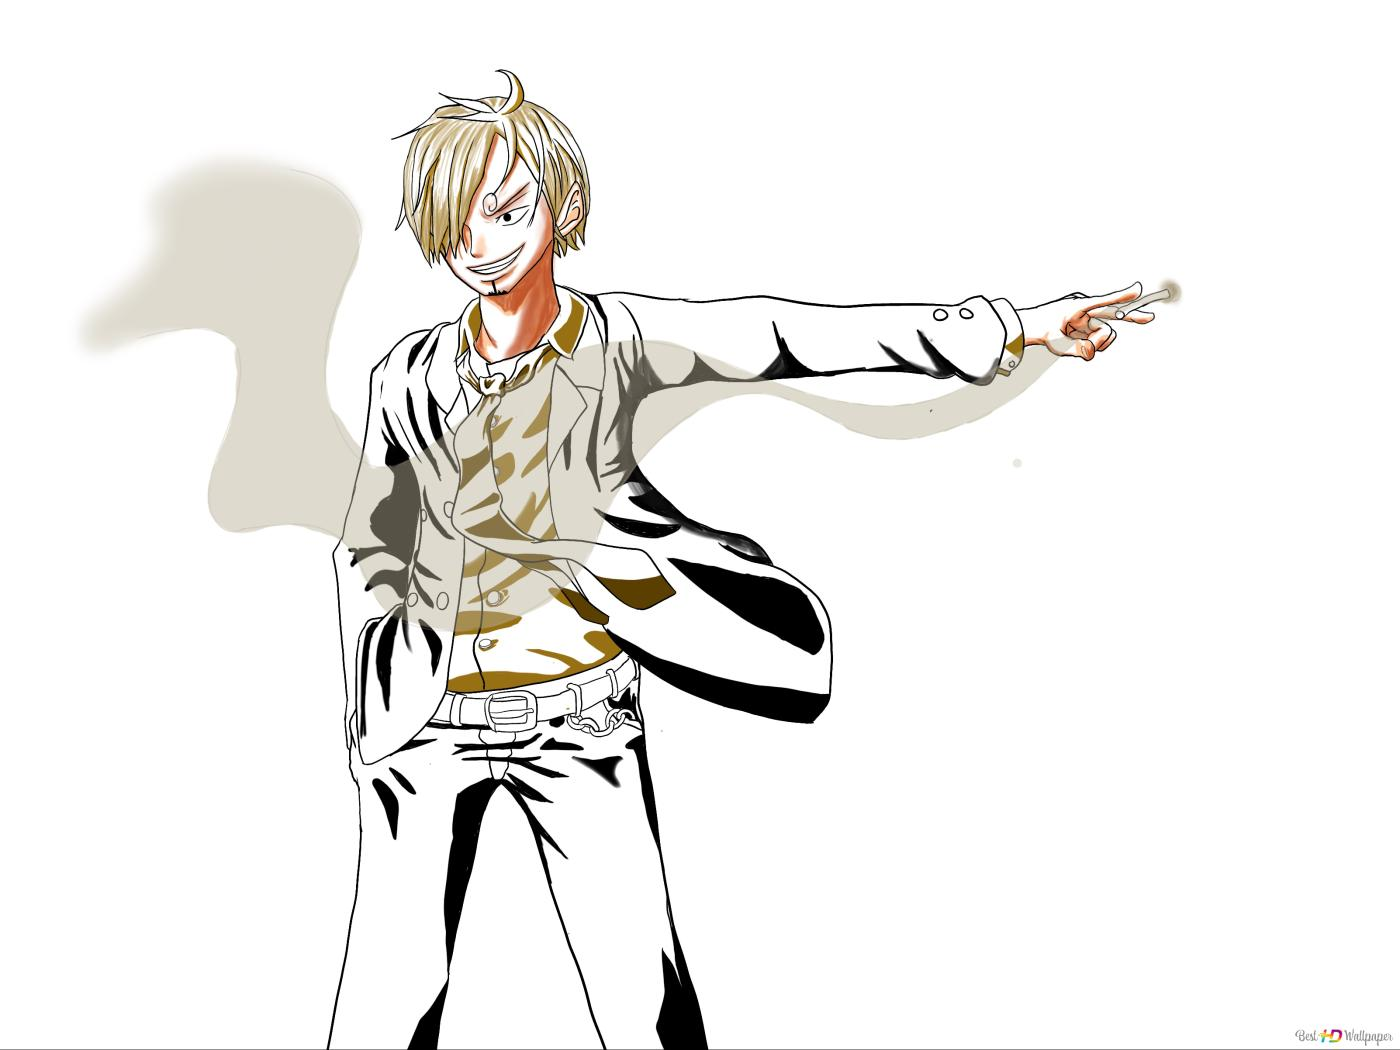 one piece sanji strawhat pirate hd wallpaper download Cool HD Wallpapers 1080P 1440x1080